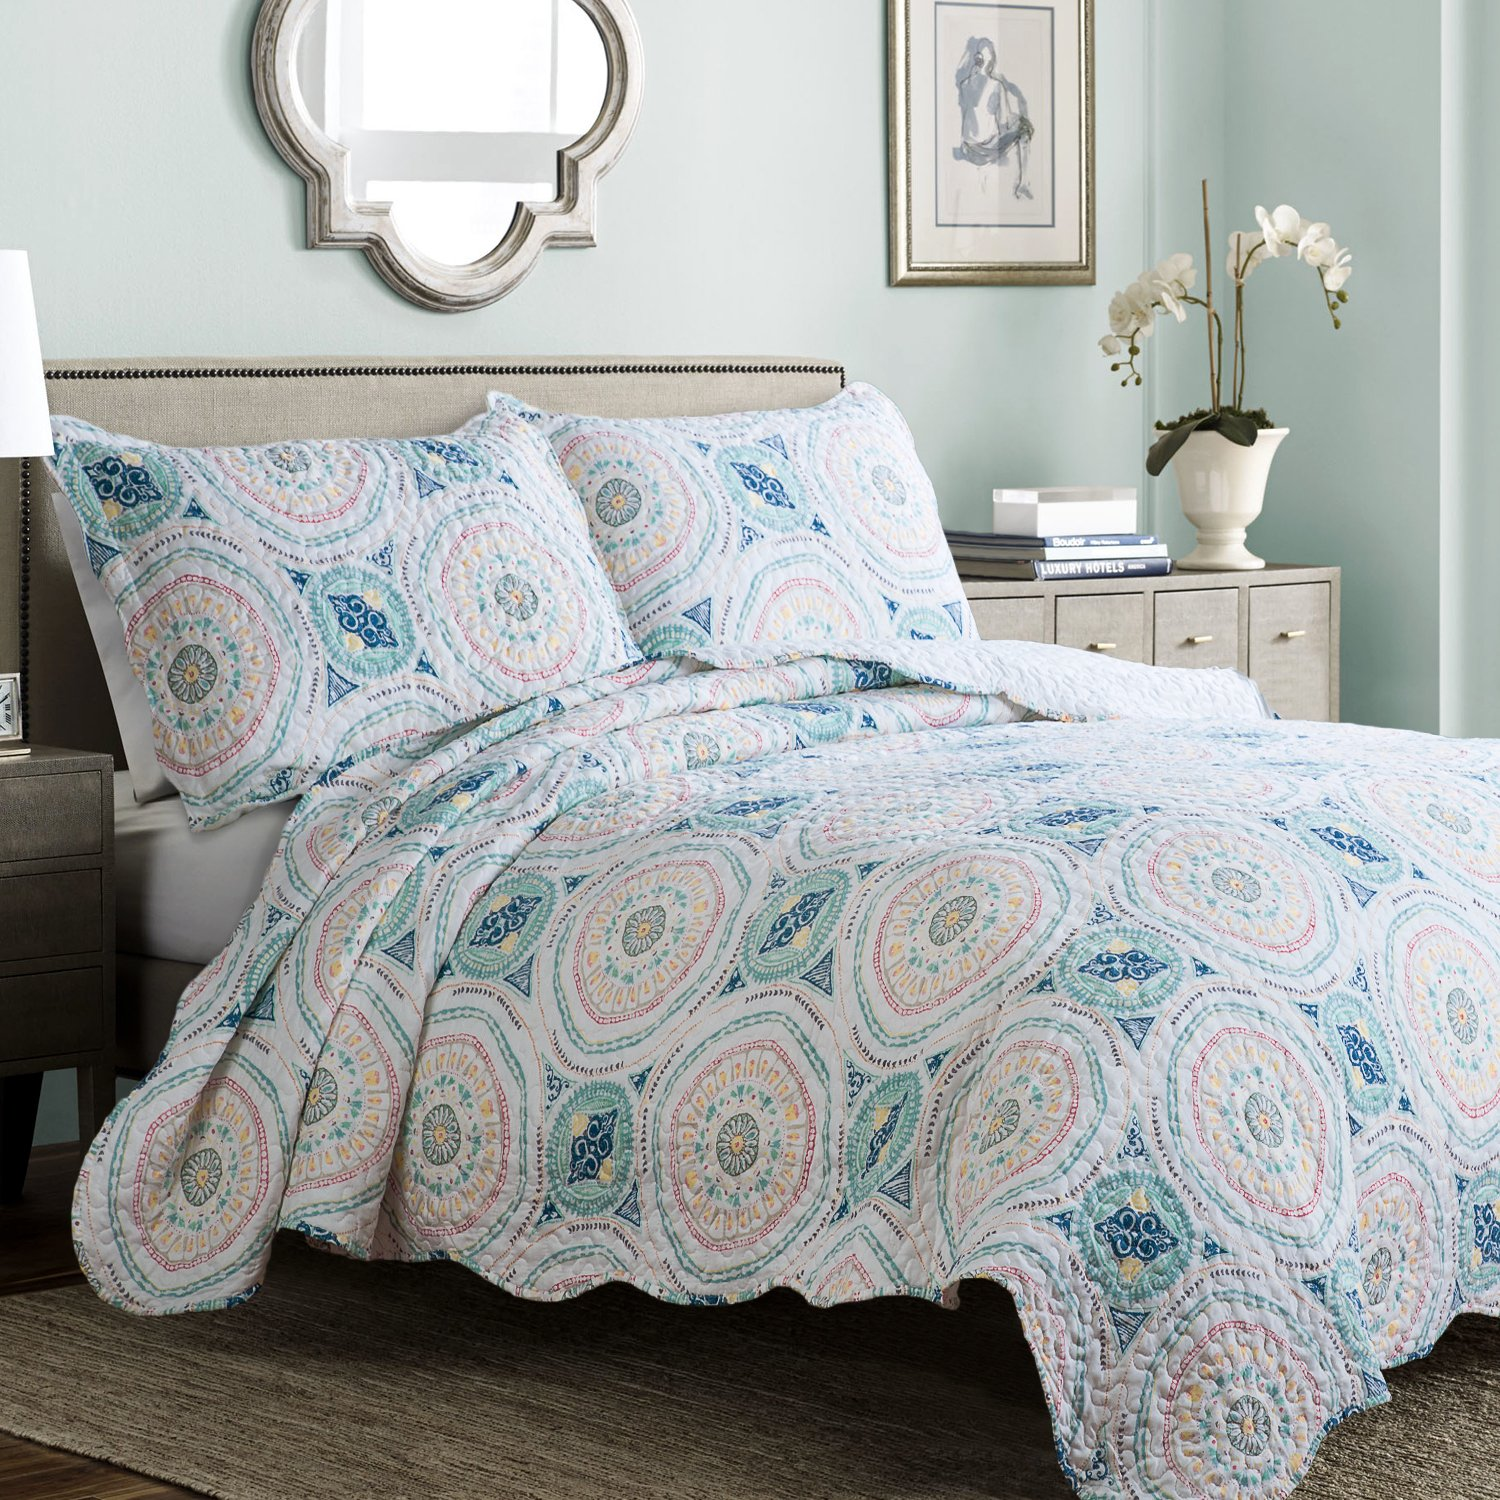 Bedsure Printed Quilt Set with Shams - Hypoallergenic and Lightweight Tangier, Blue Aqua, Full/Queen